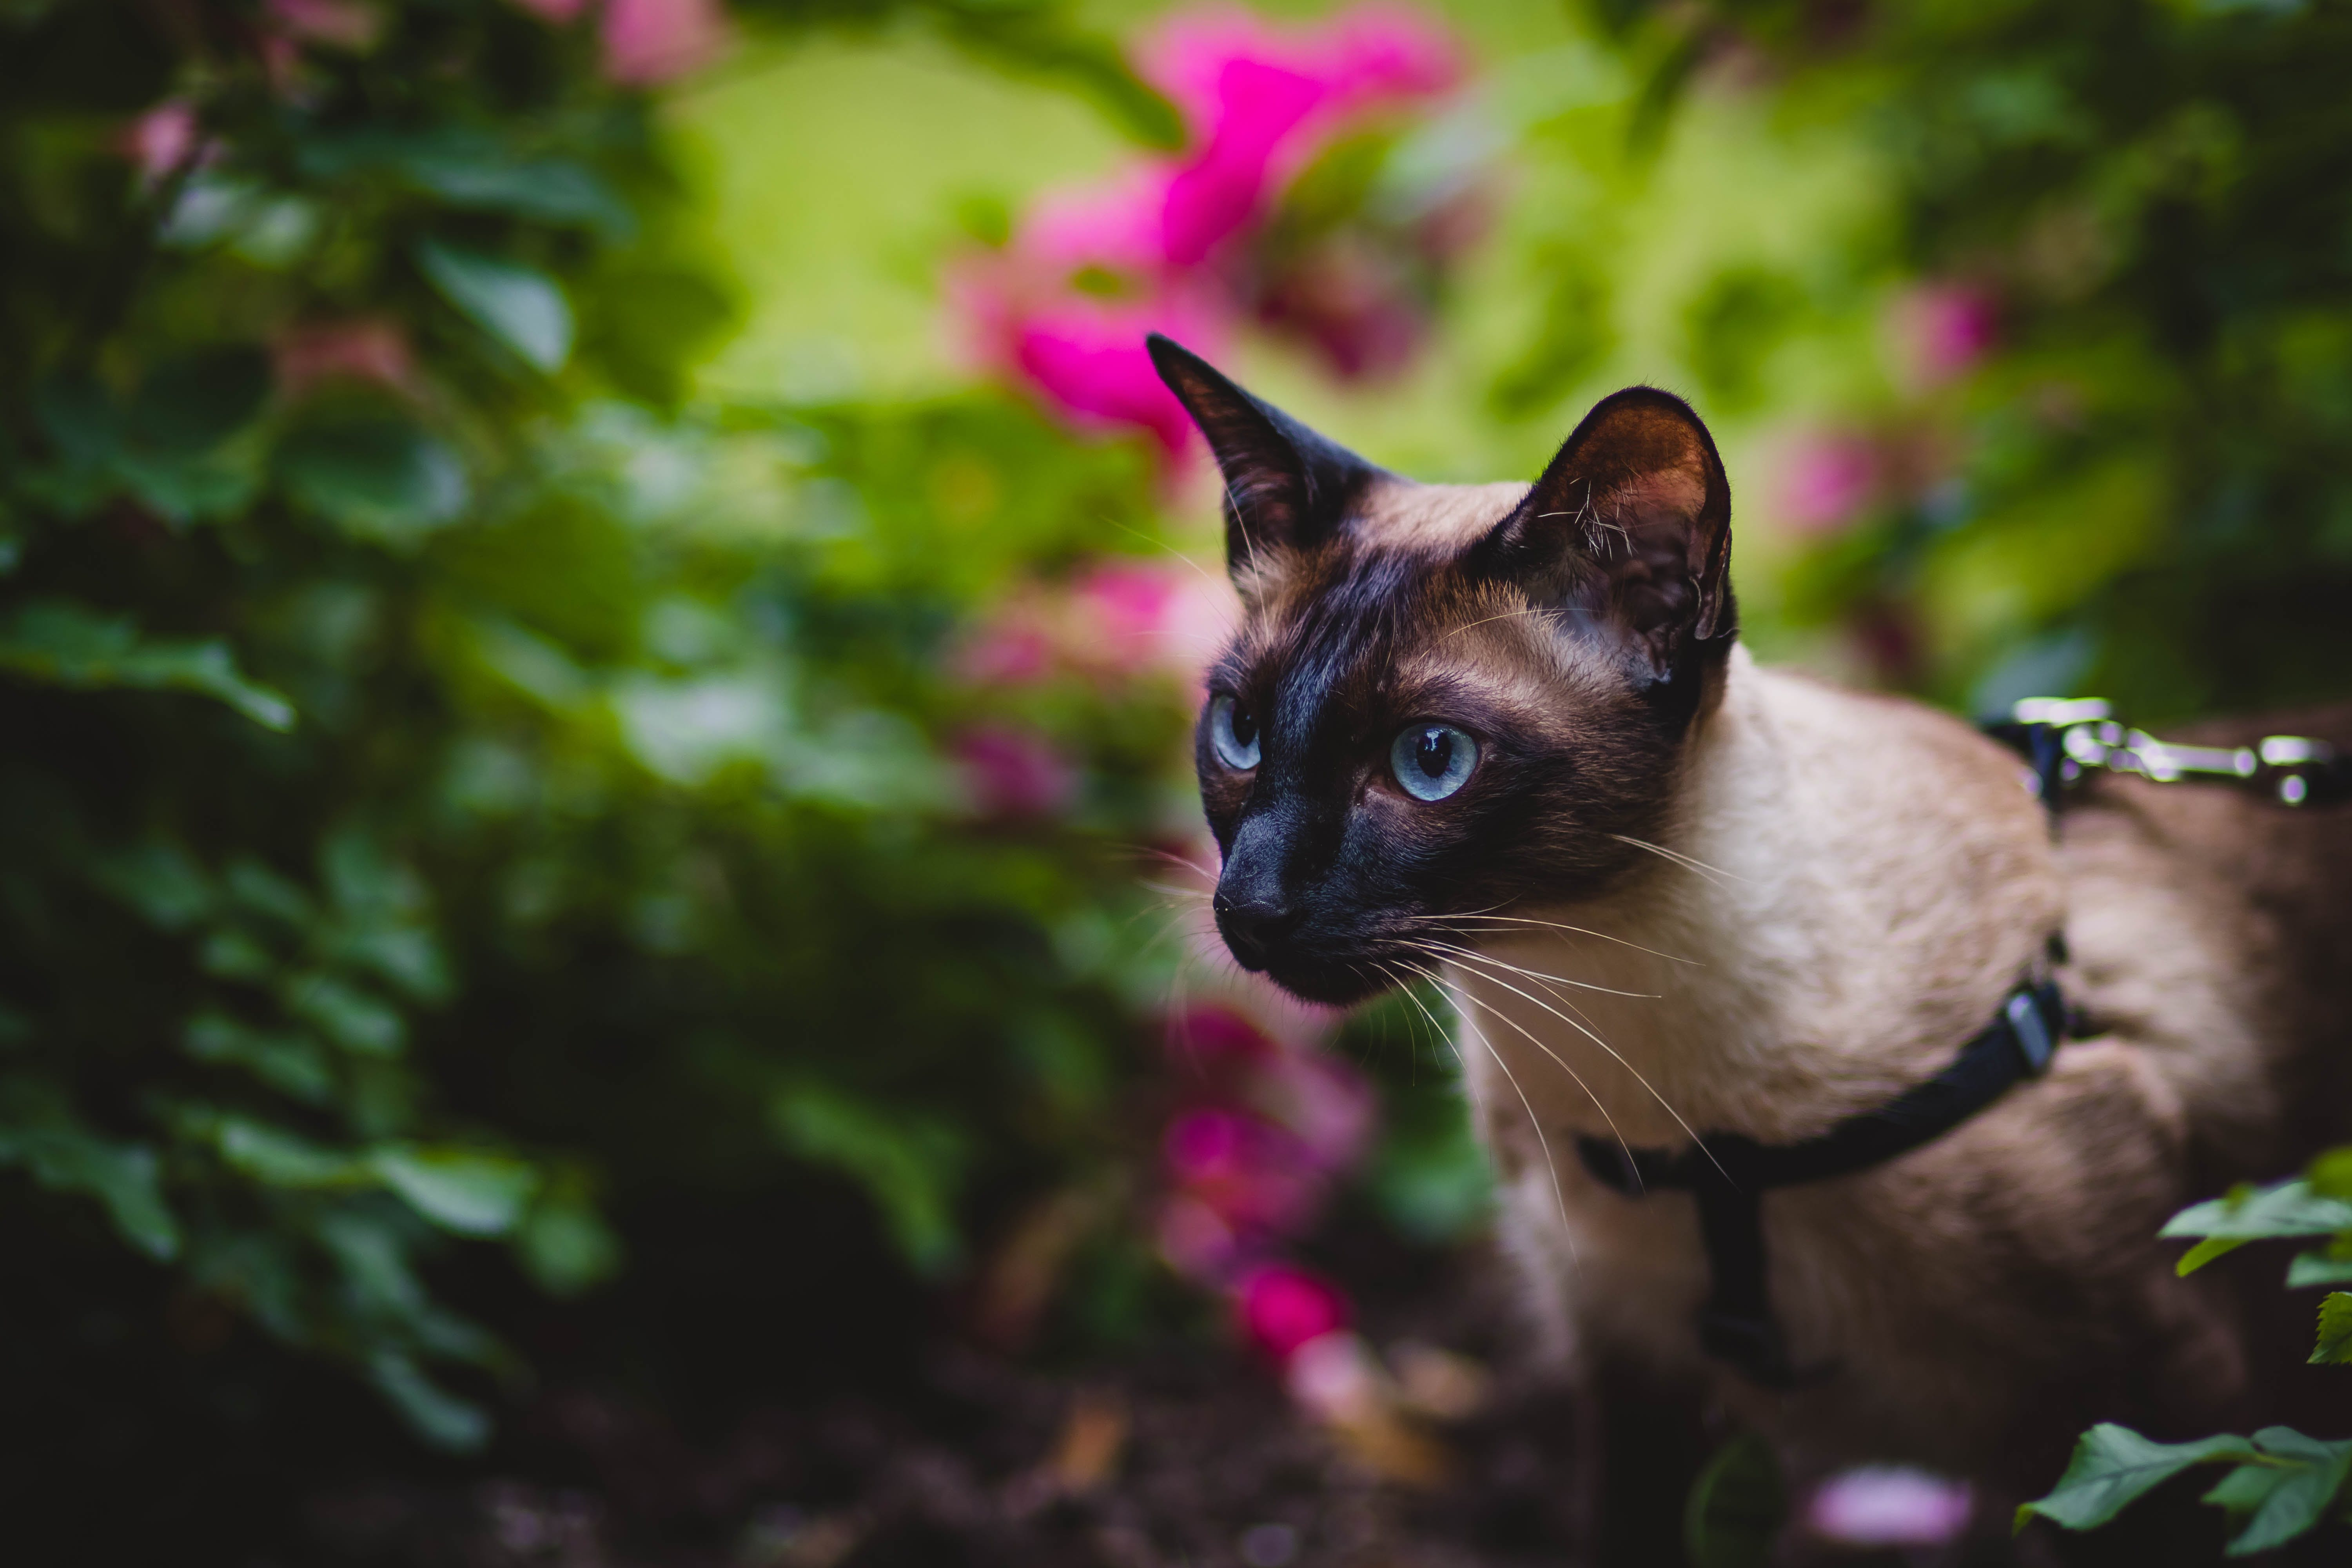 Black and Grey Cat in Selective Focus Photography